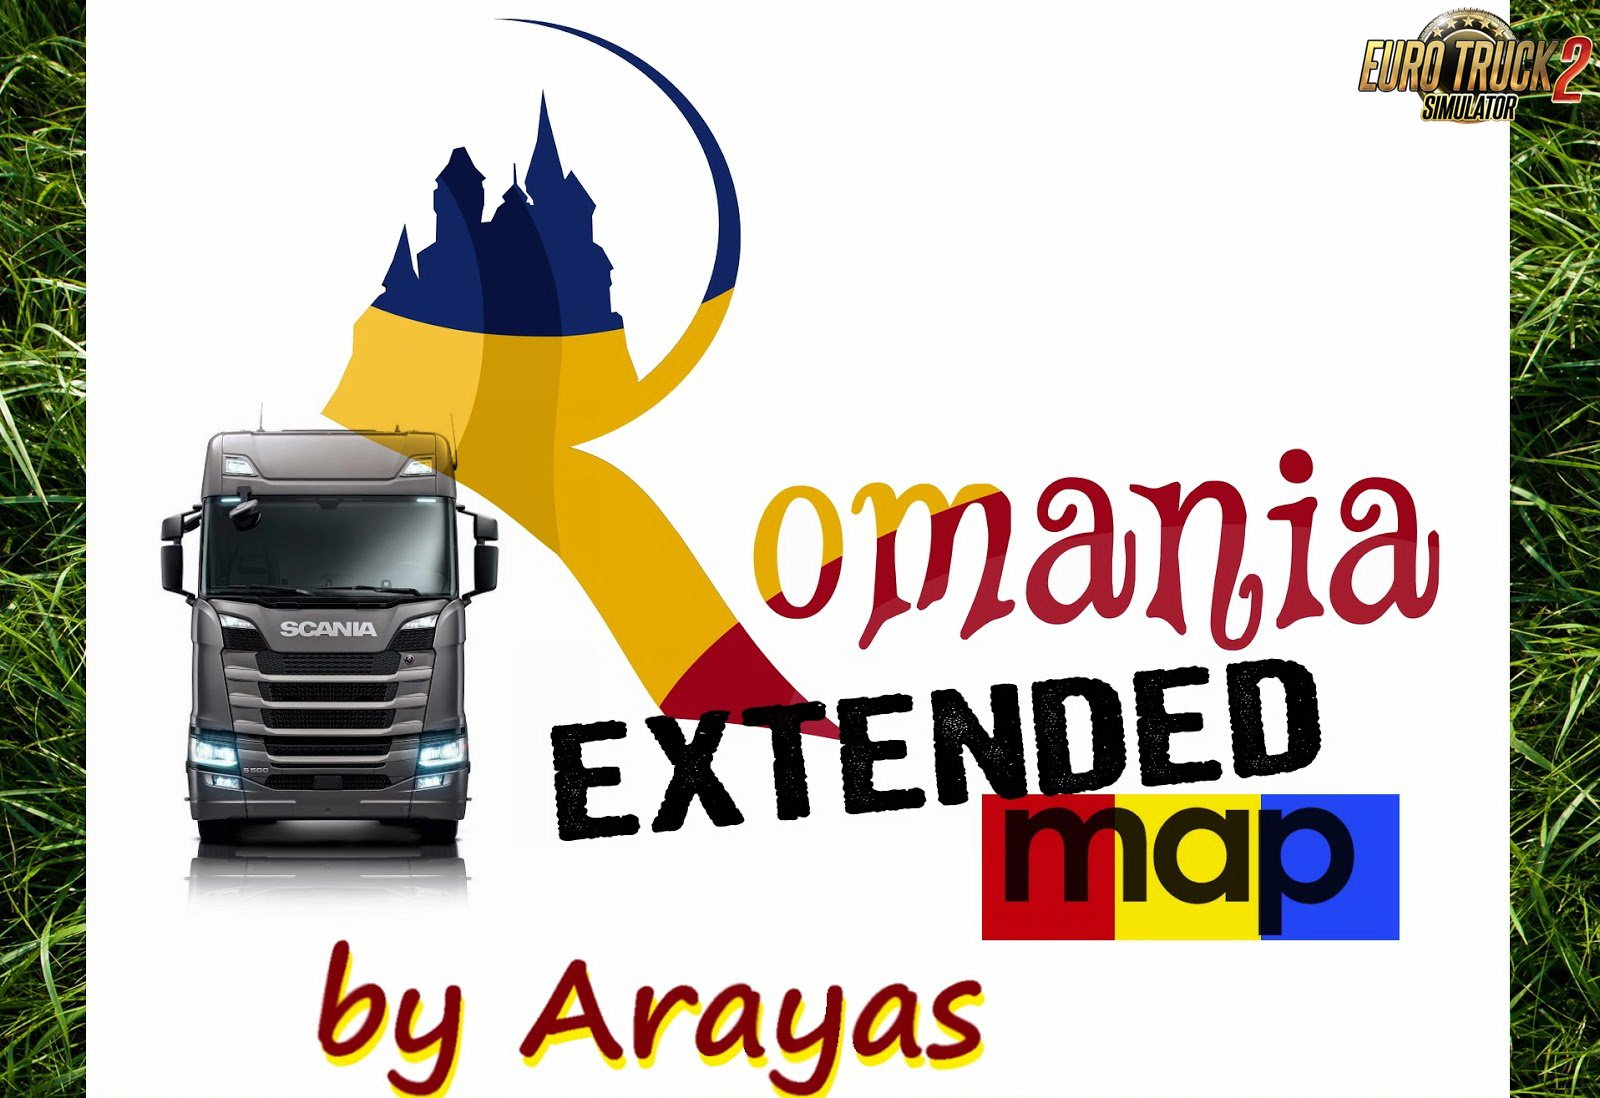 Romania Extended Map v1.8 by Arayas [1.31.x]